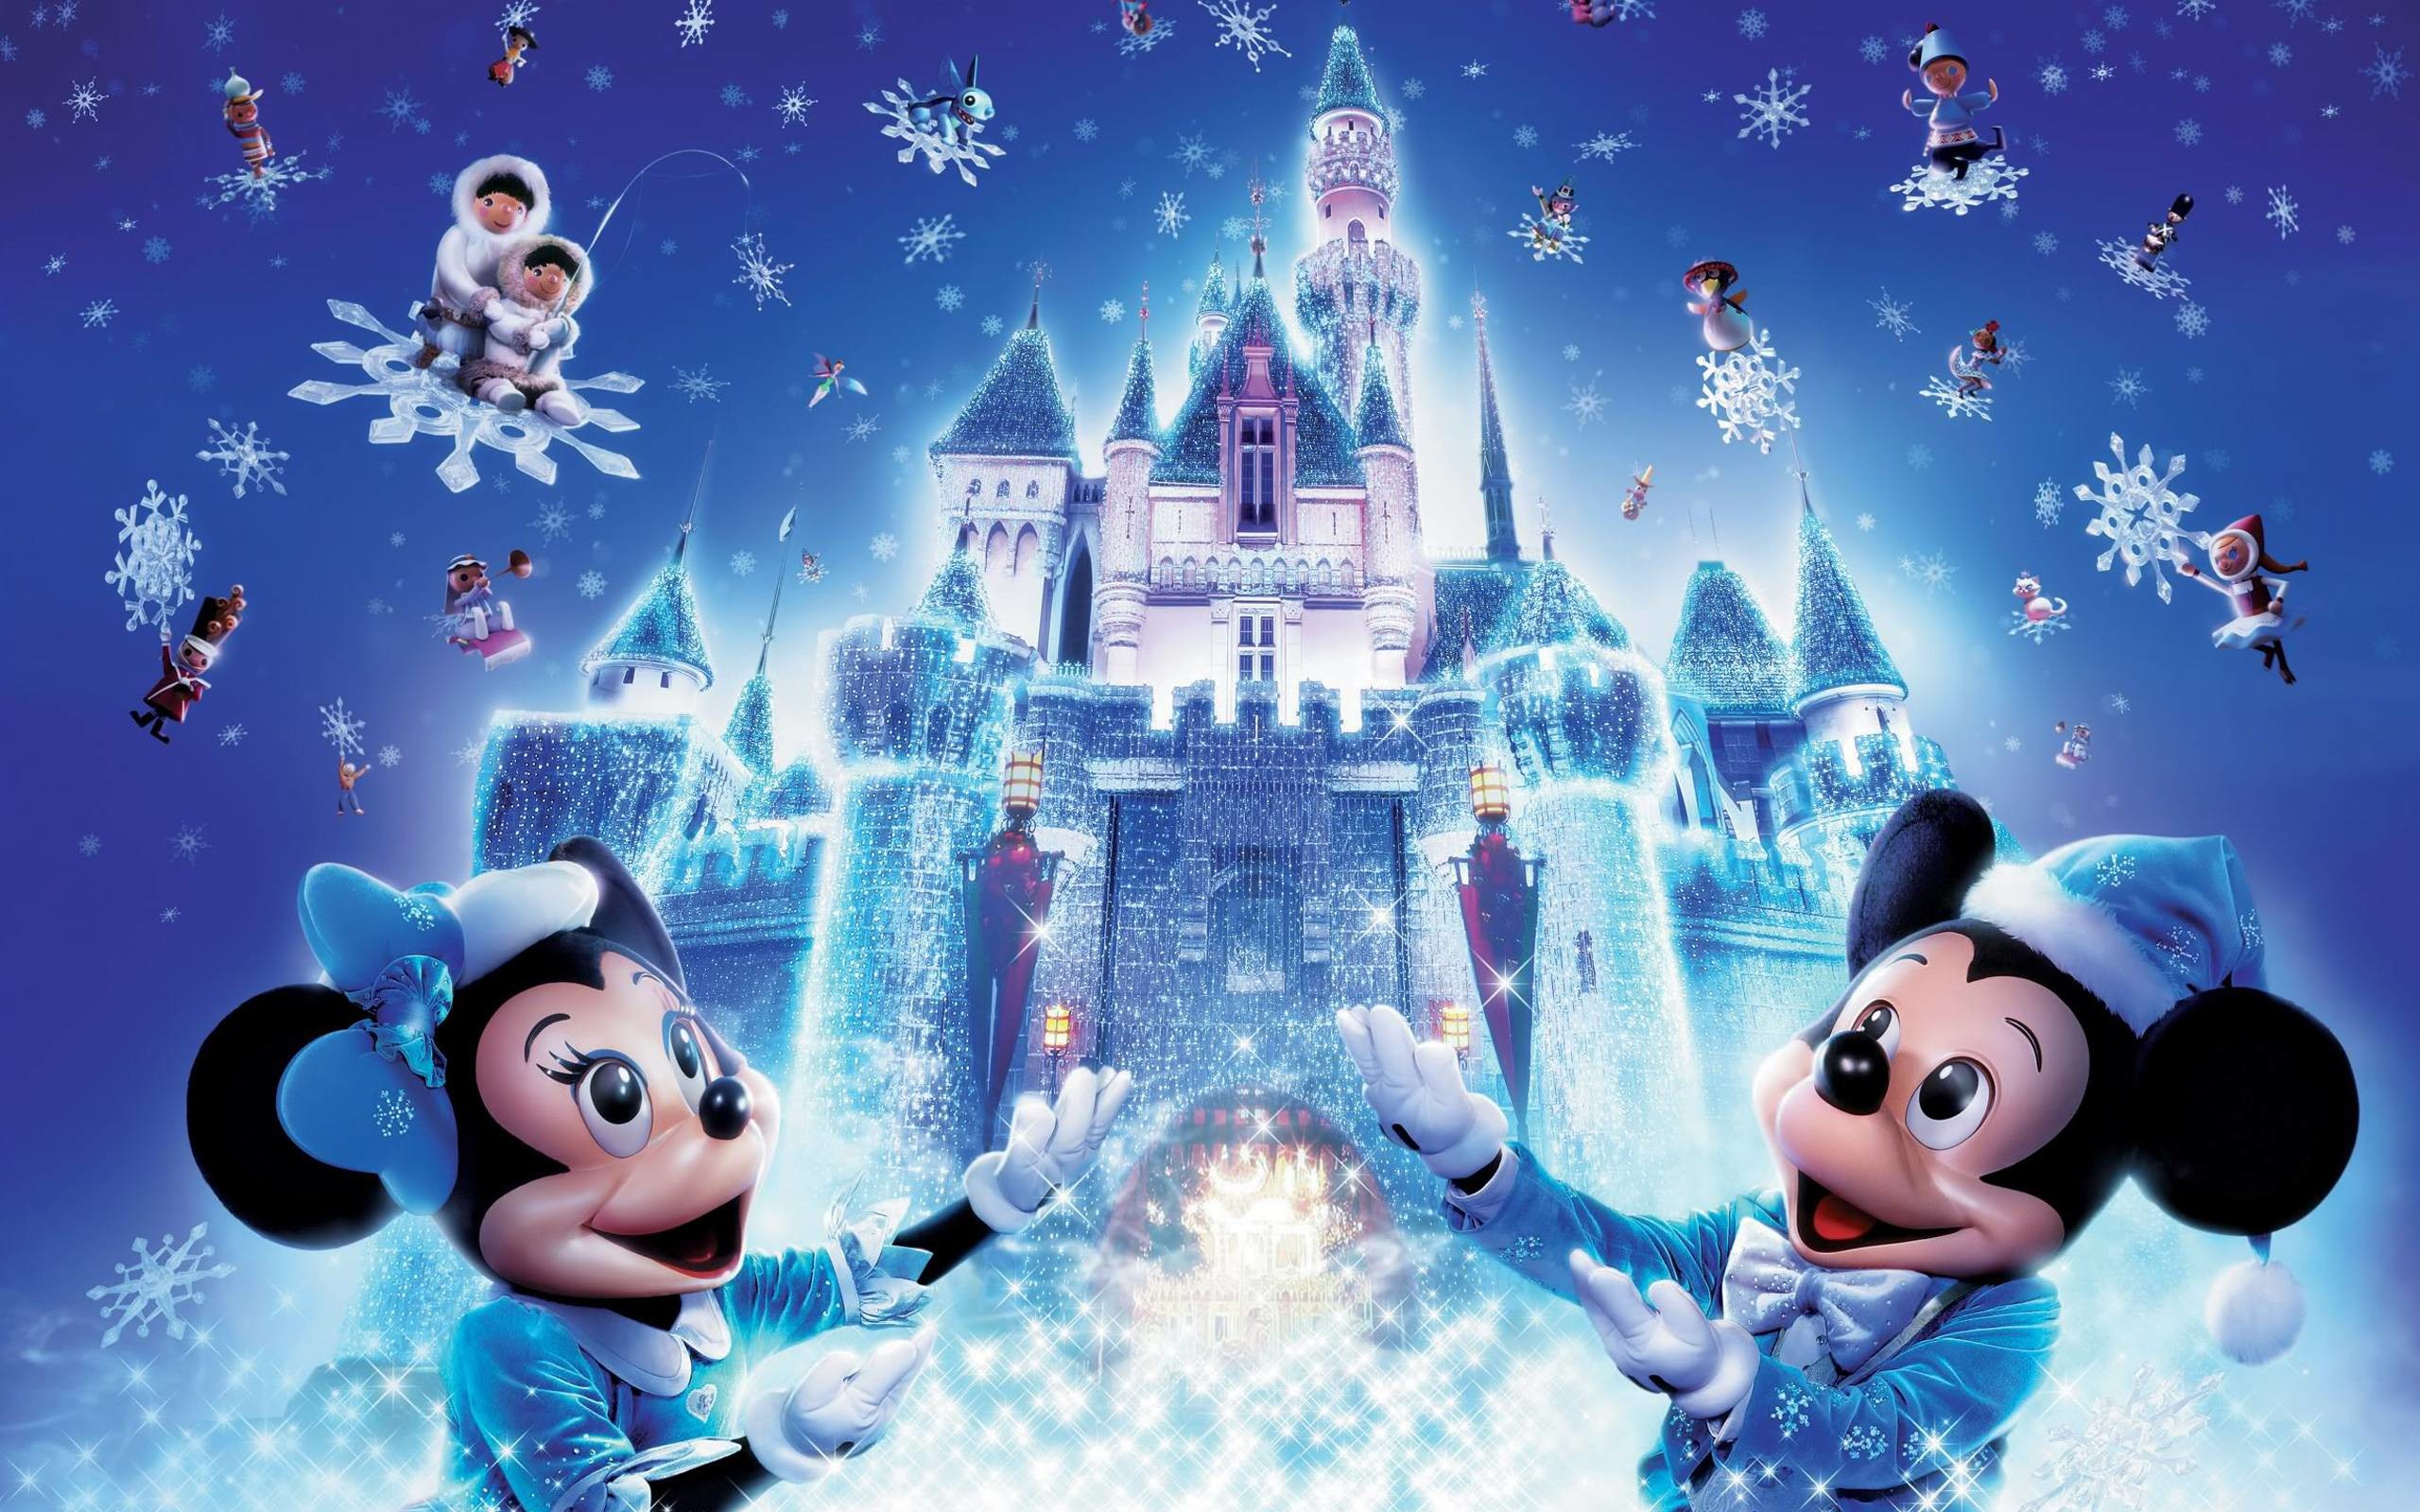 Free Christmas Wallpaper Backgrounds.Disney Christmas Wallpaper Backgrounds 58 Pictures